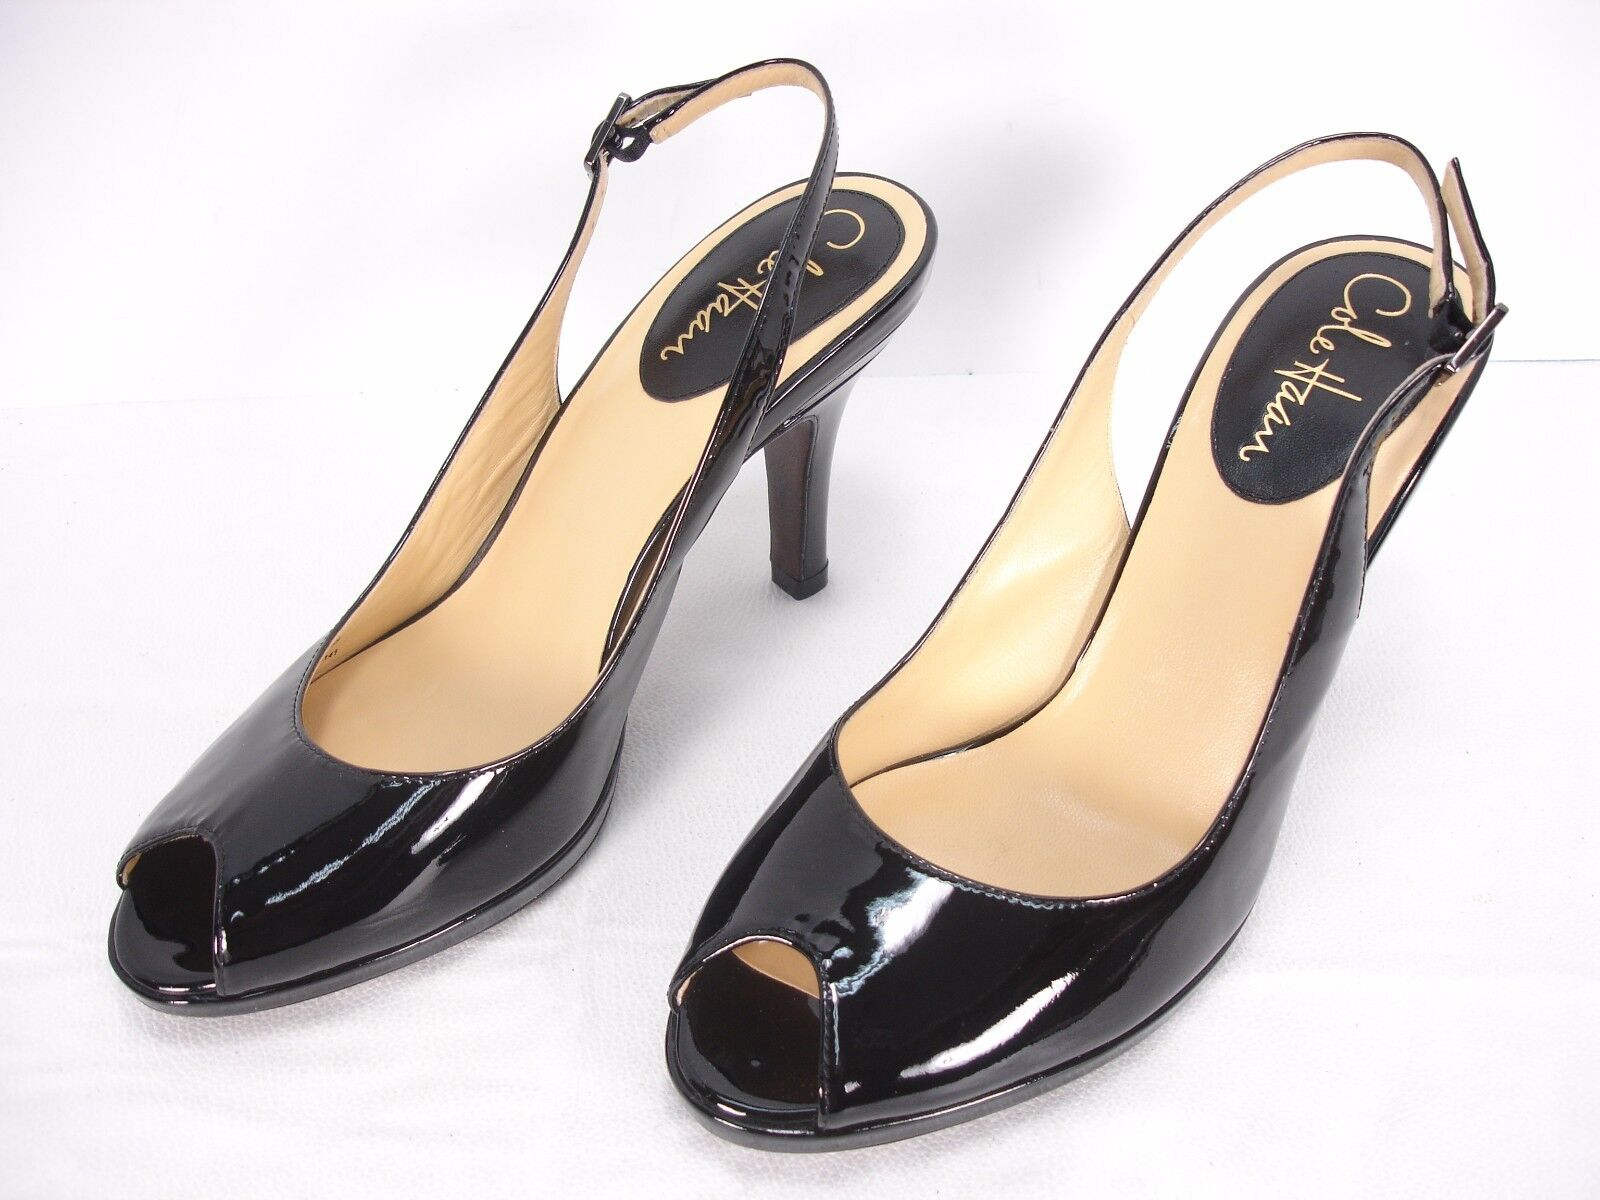 COLE HAAN AIR PATENT LEATHER PEEP TOE SLINGBACKS Schuhe WOMEN'S 8 B MINT